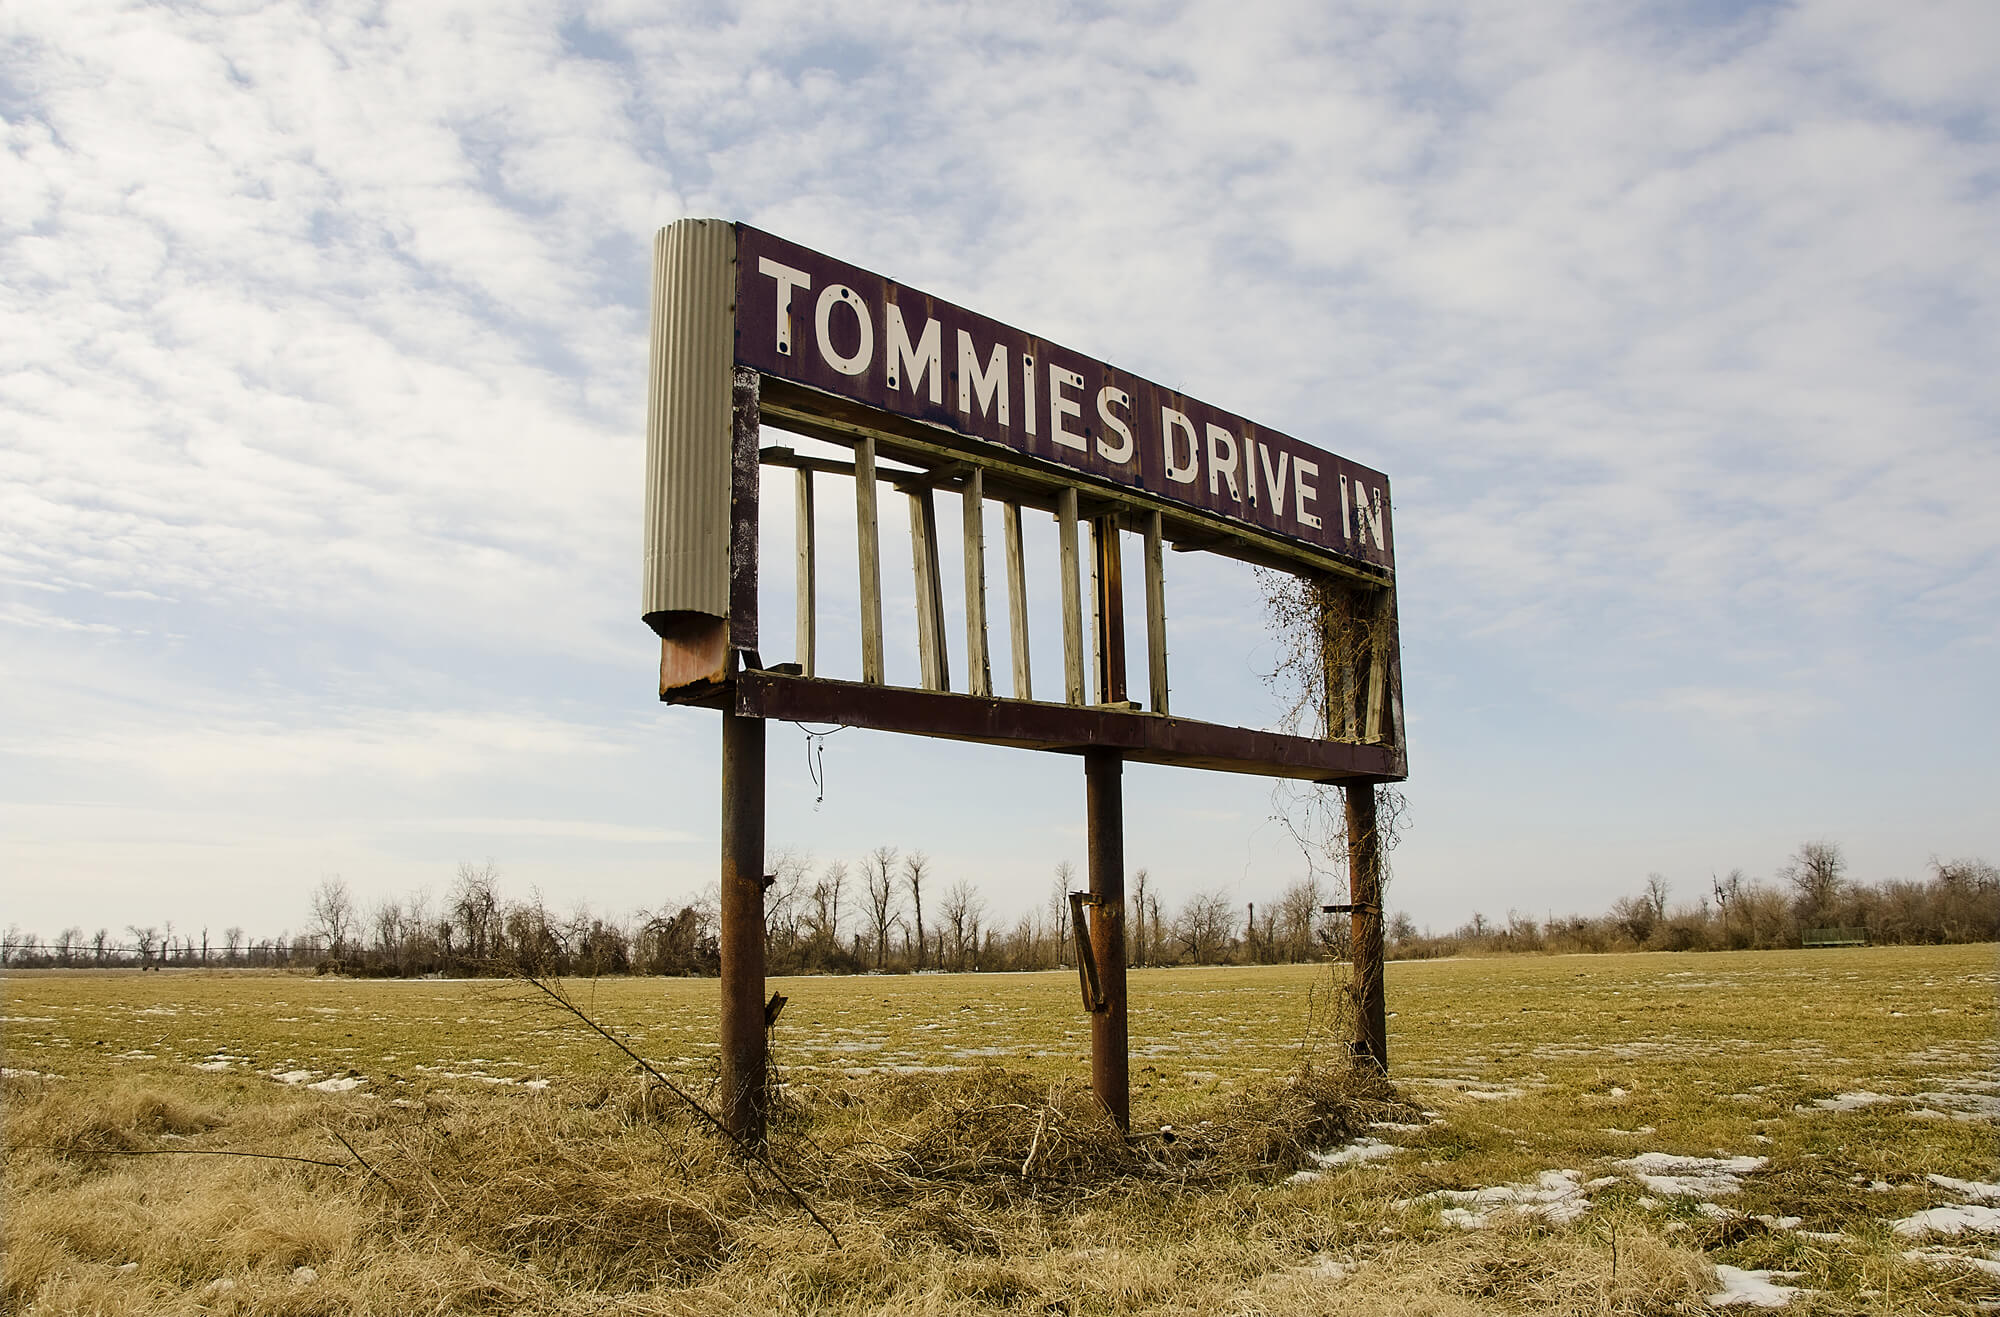 Tommie's